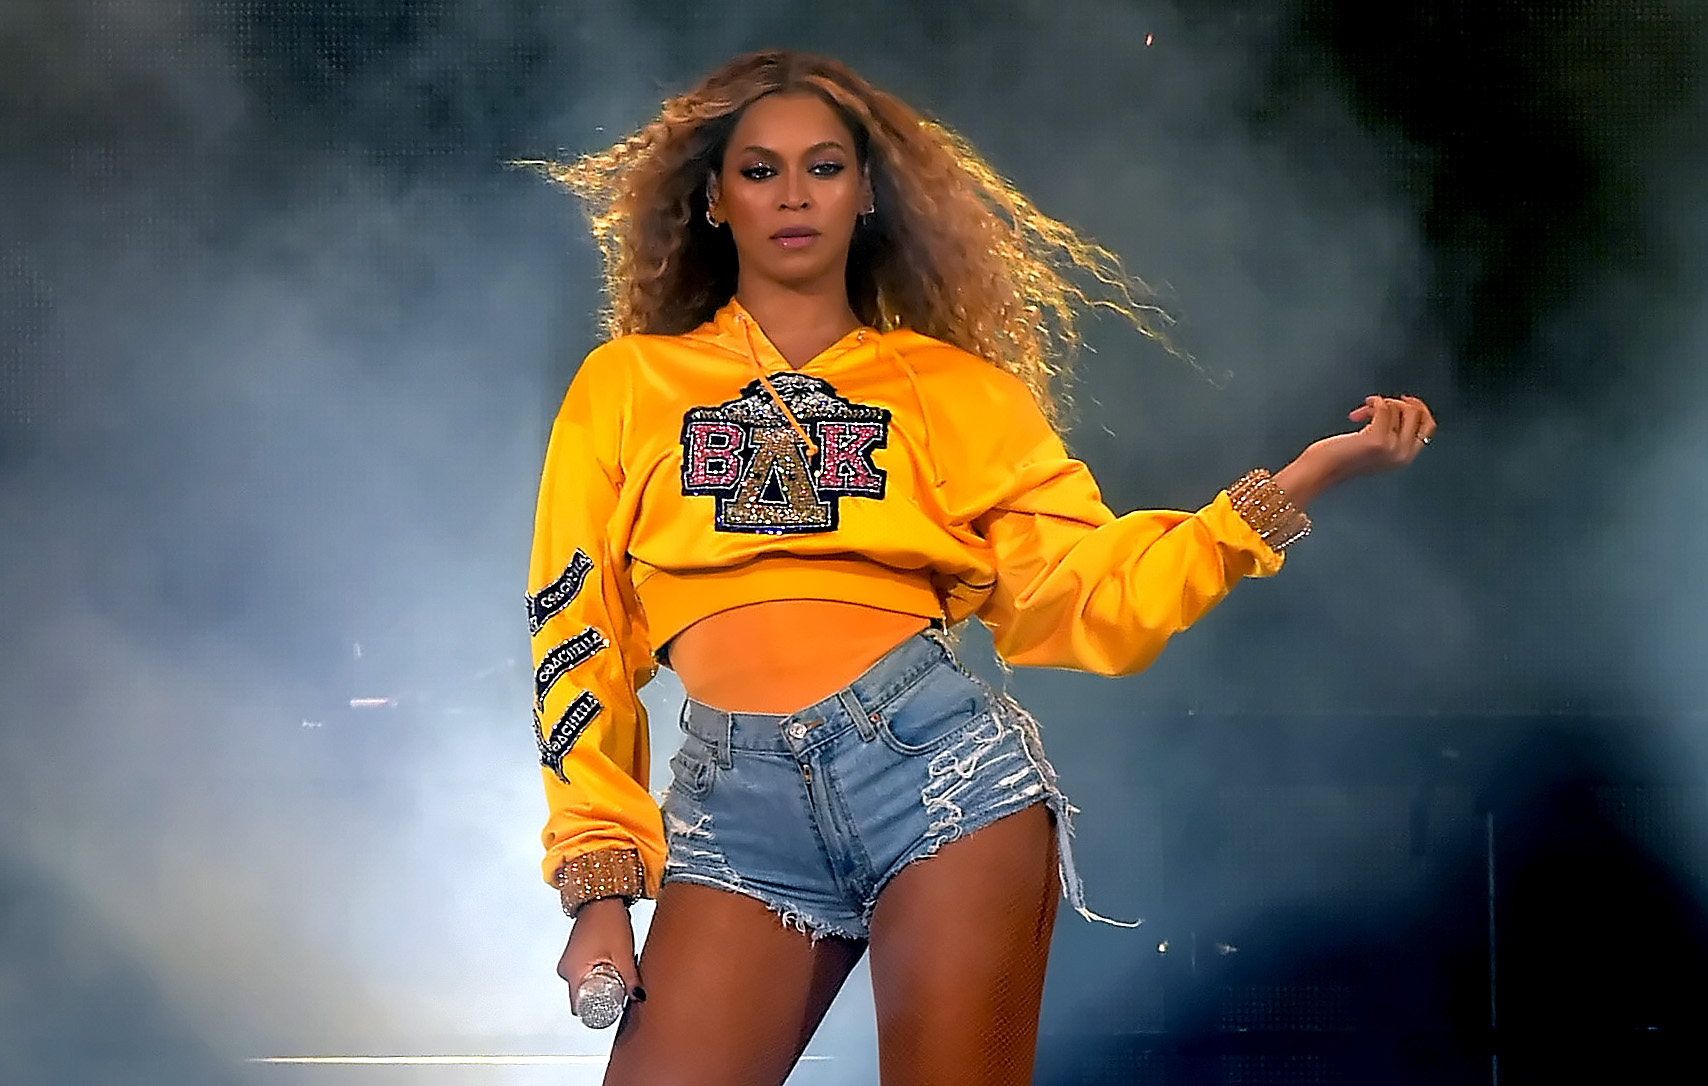 Here's Beyoncé's full Coachella performance, in case you need something to cry over this Monday morning